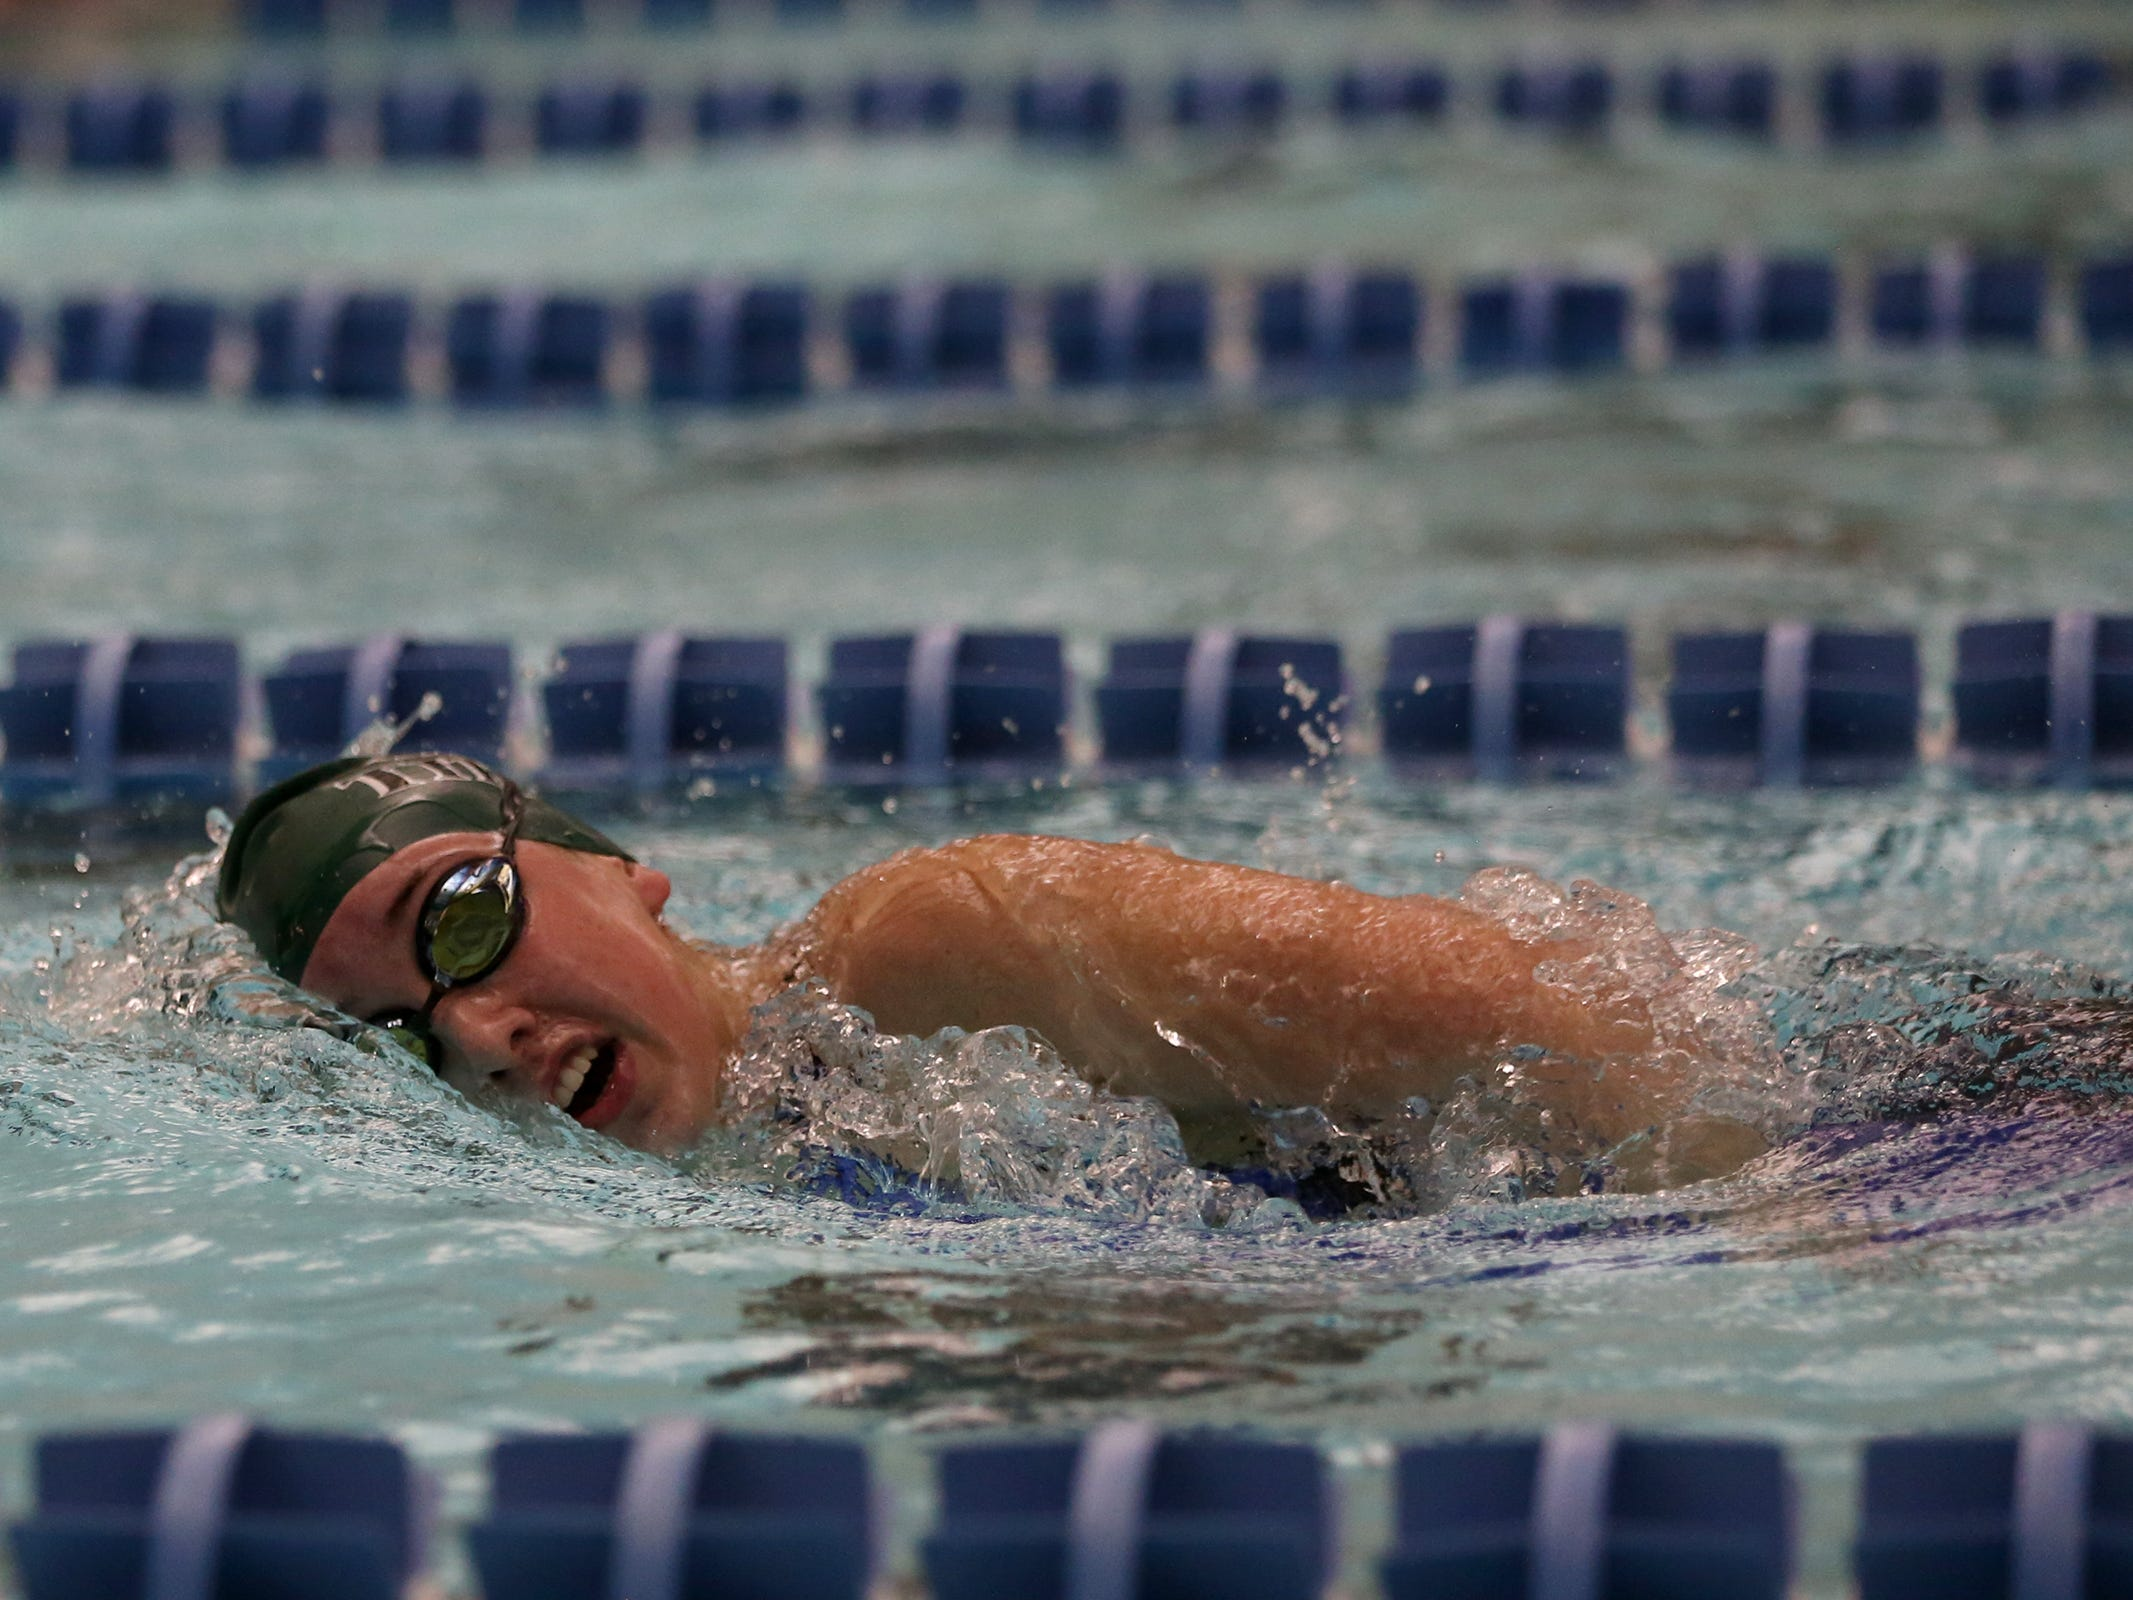 West Salem freshman Paige Anderson competes in the girls 500-yard freestyle at the OSAA 6A Mountain Valley Conference swimming championships at the Kroc Center in Salem, Oregon on Friday, Feb. 8, 2019.